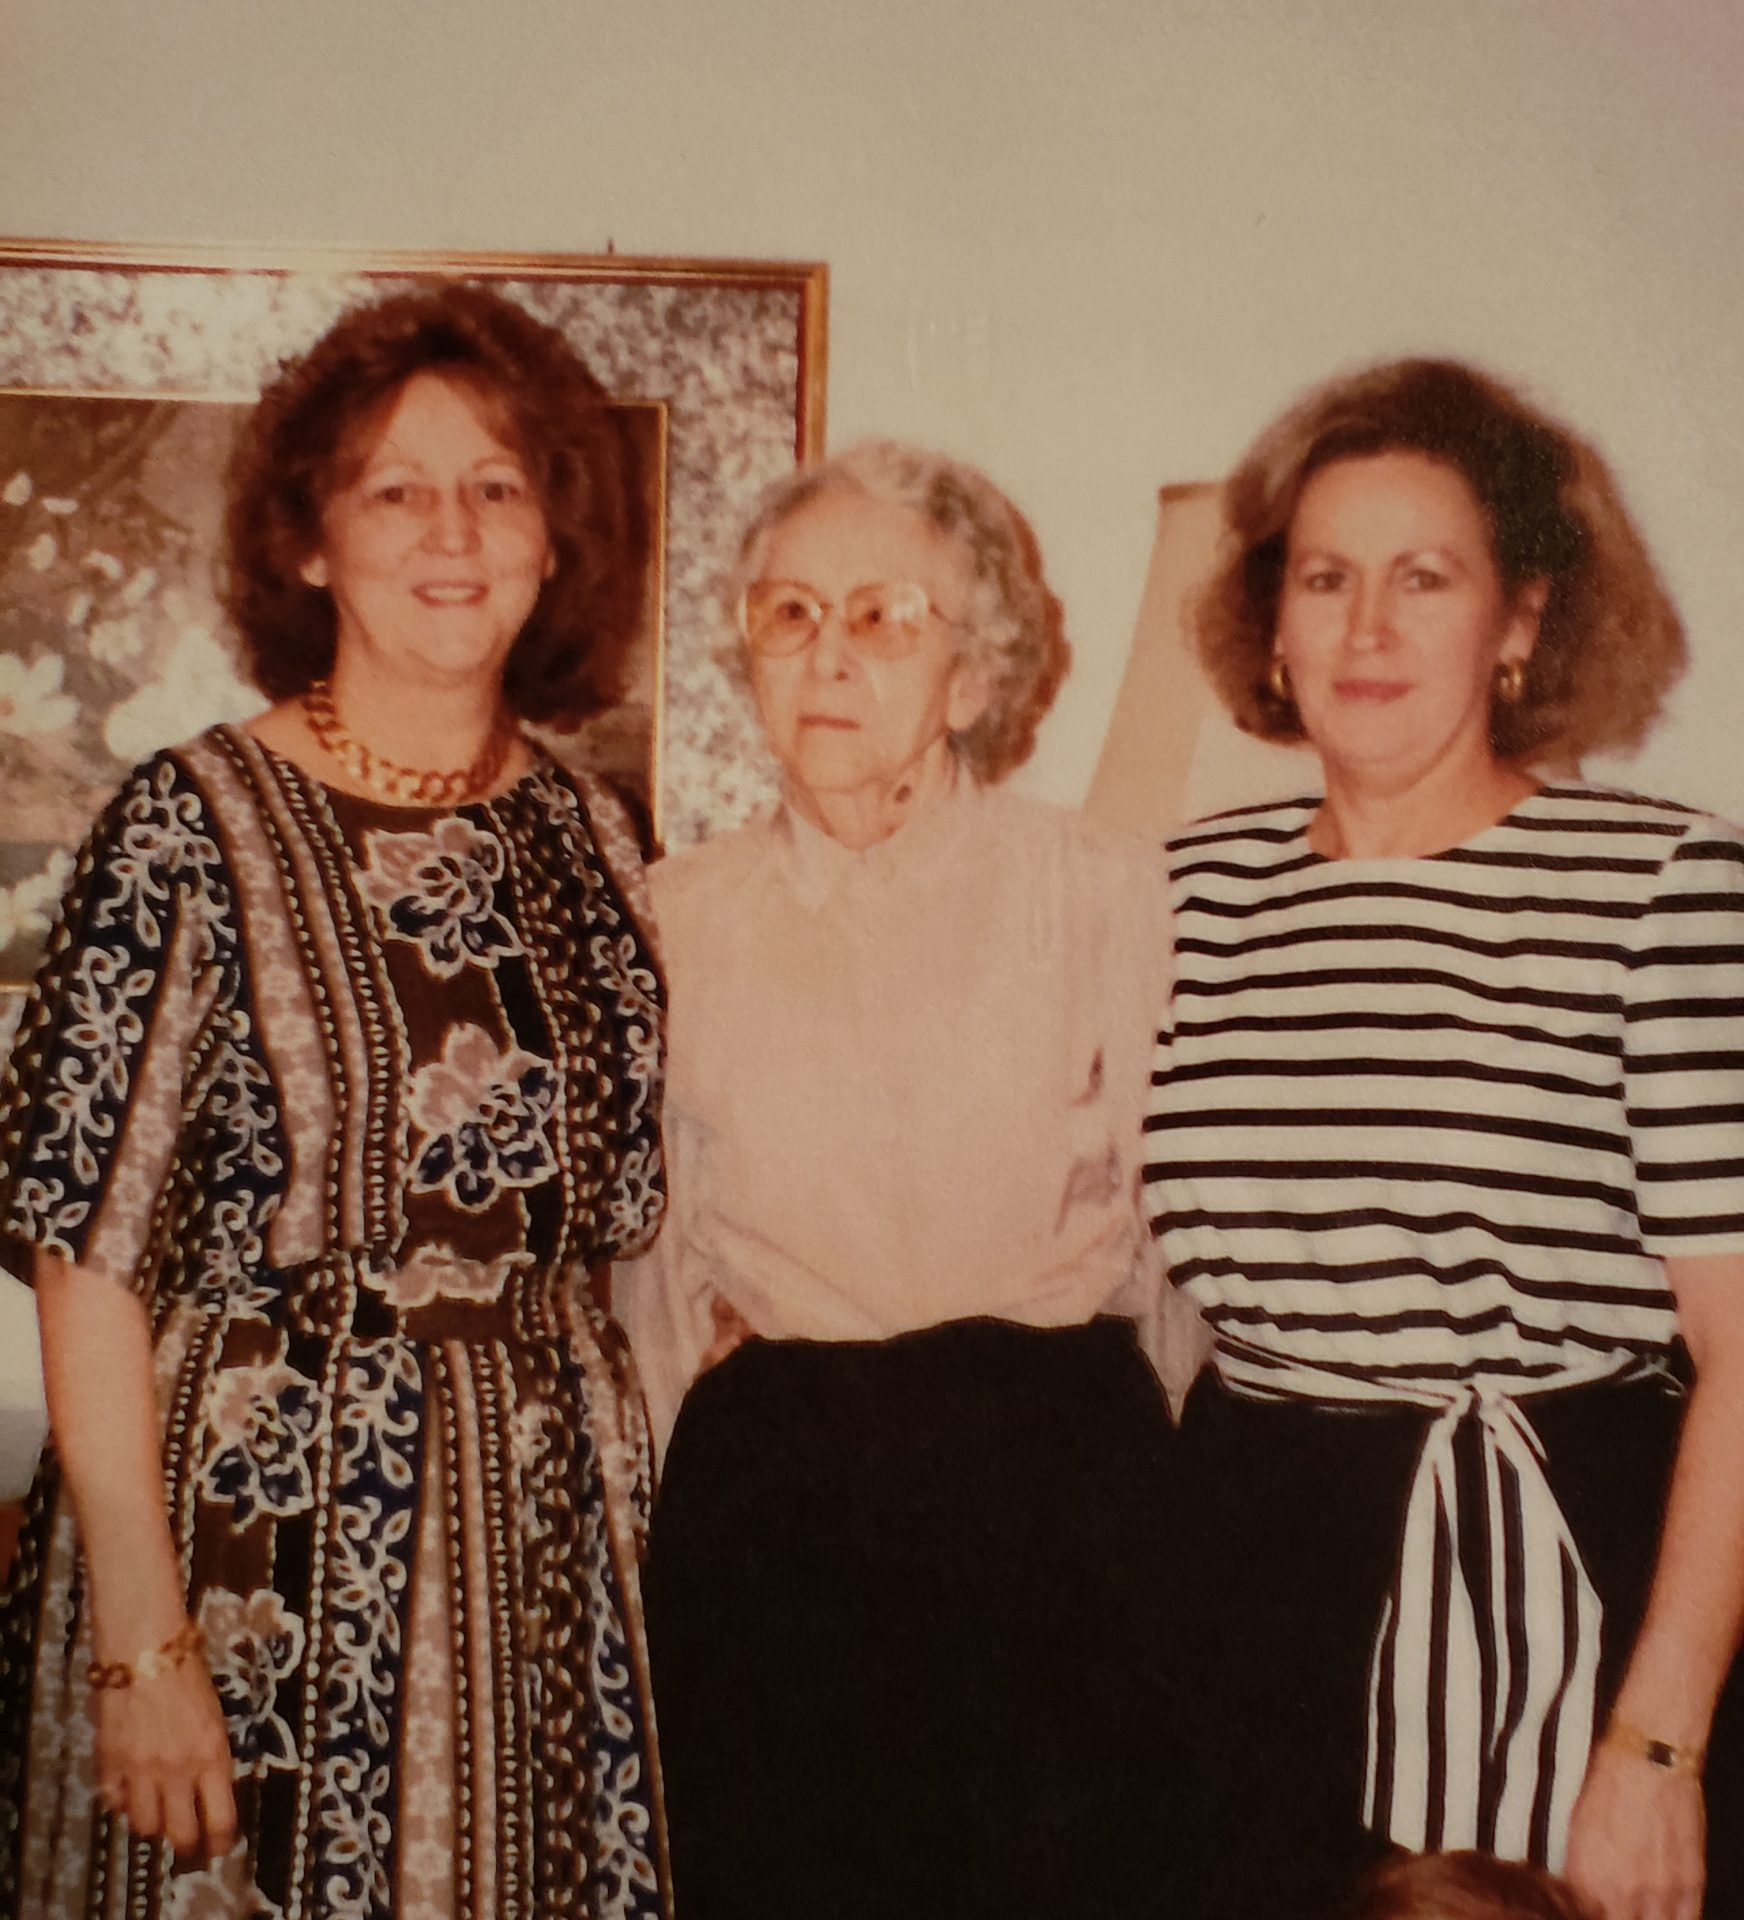 Ruth, Vivian and their mother